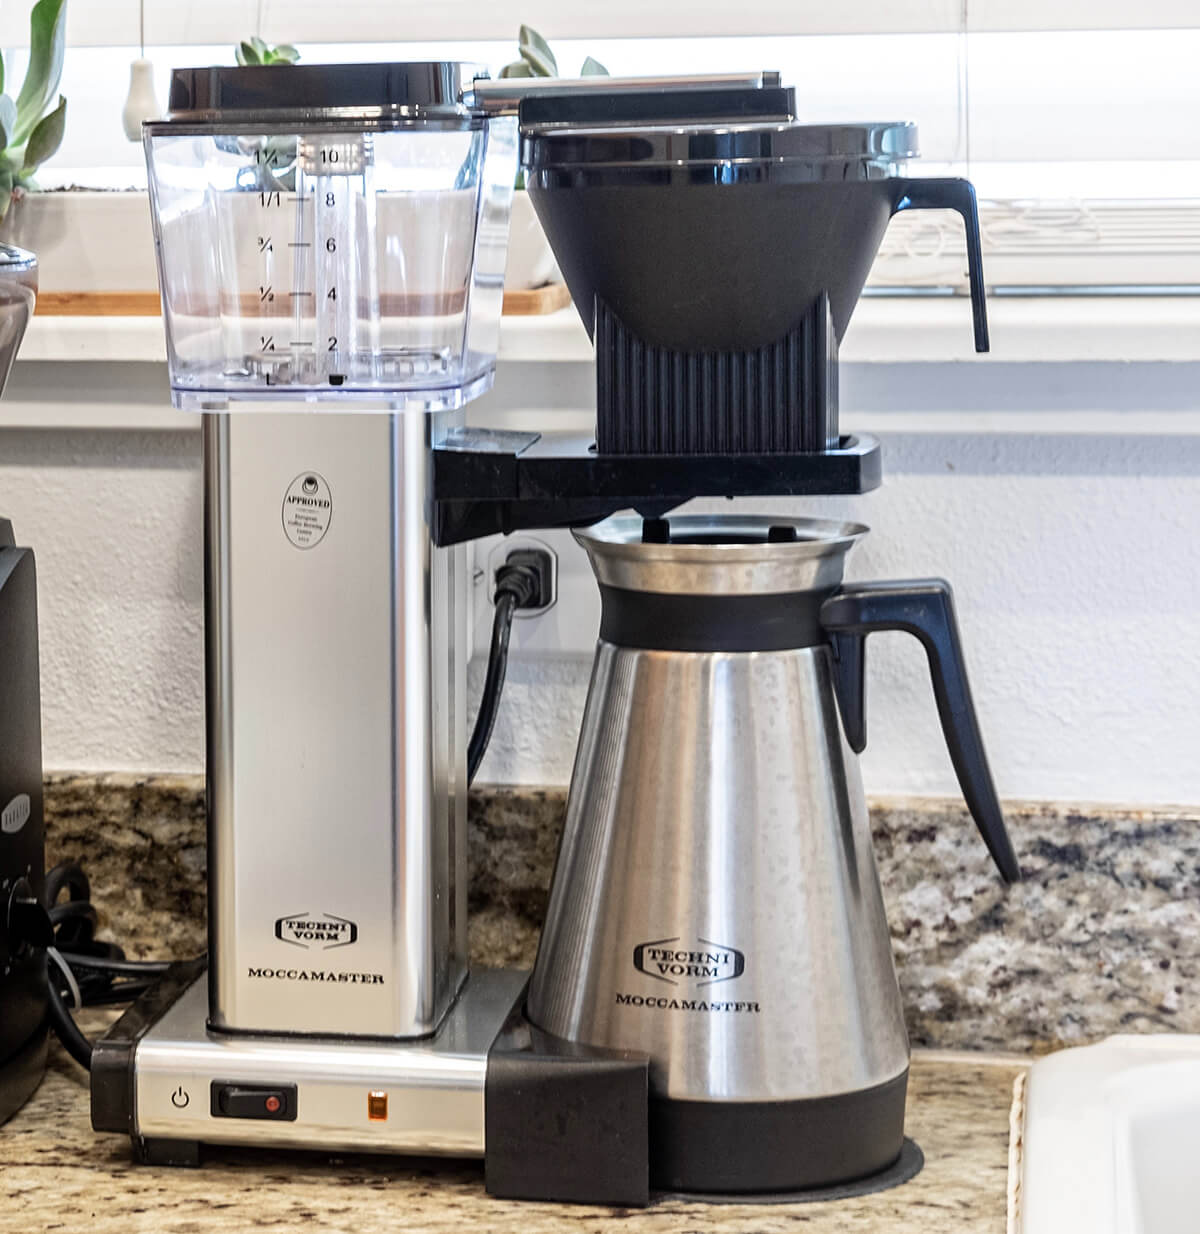 Invest in a reliable coffee maker